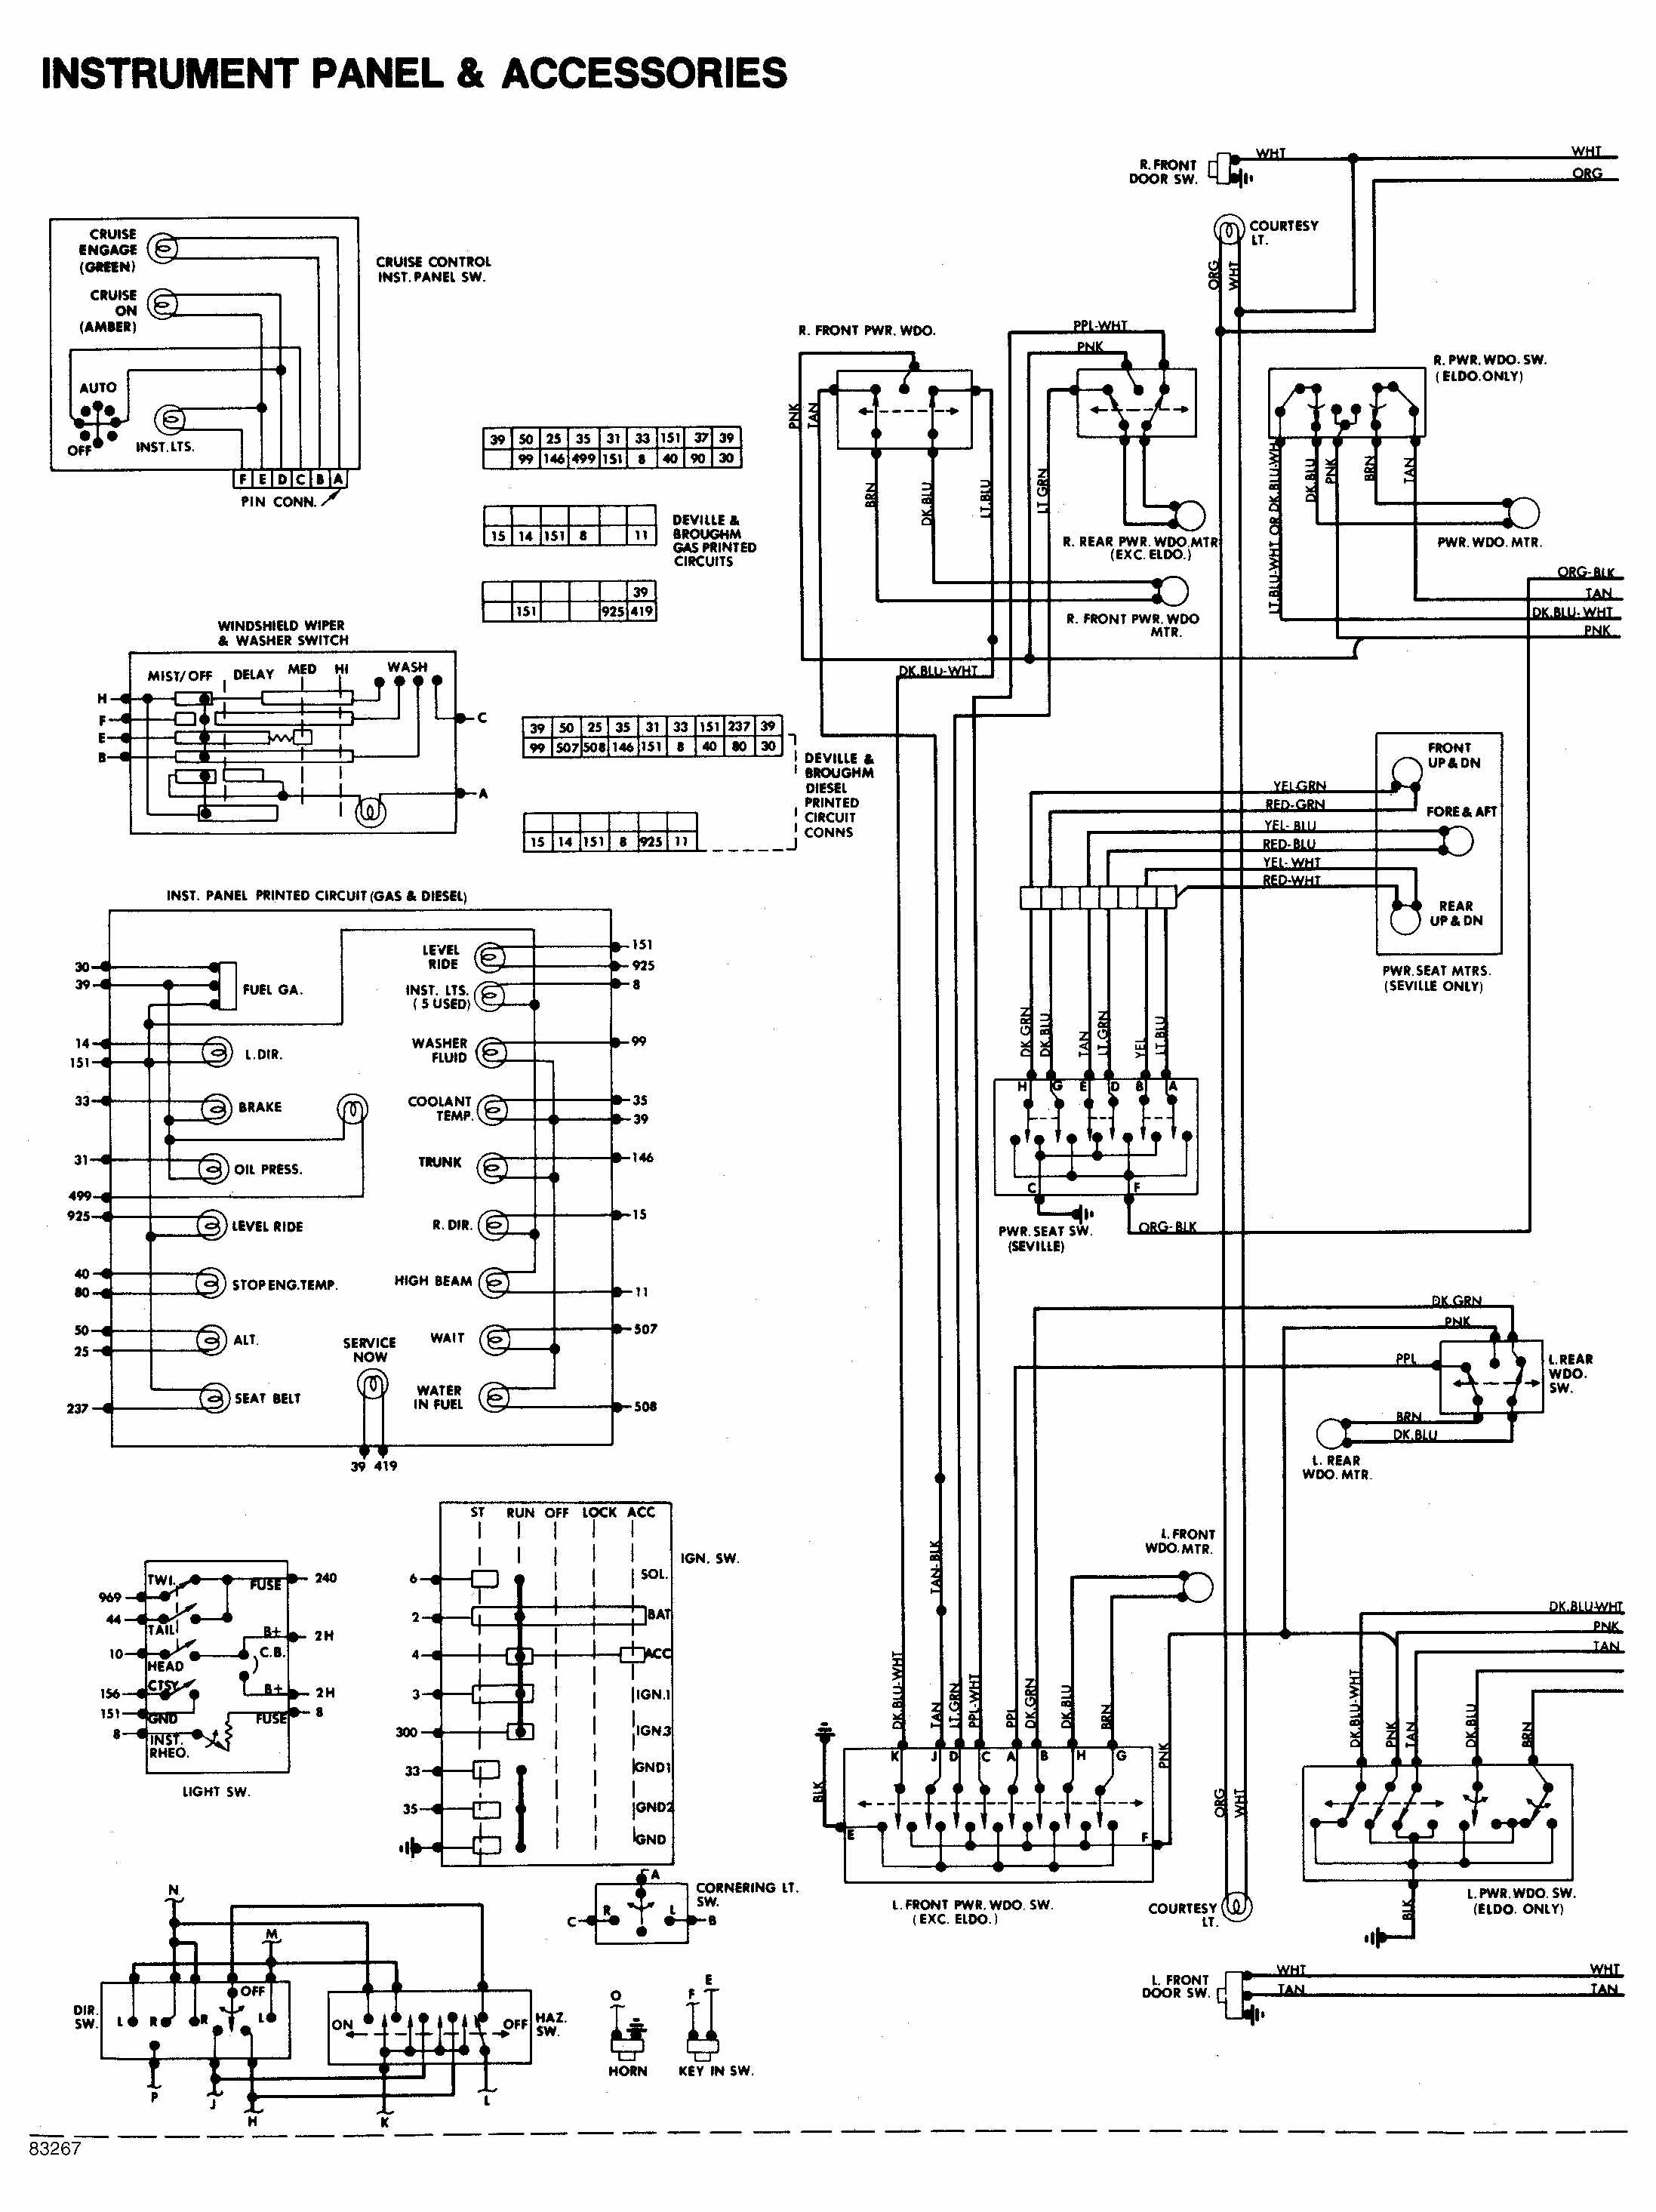 Chevy Diagrams on power window switch wiring diagram